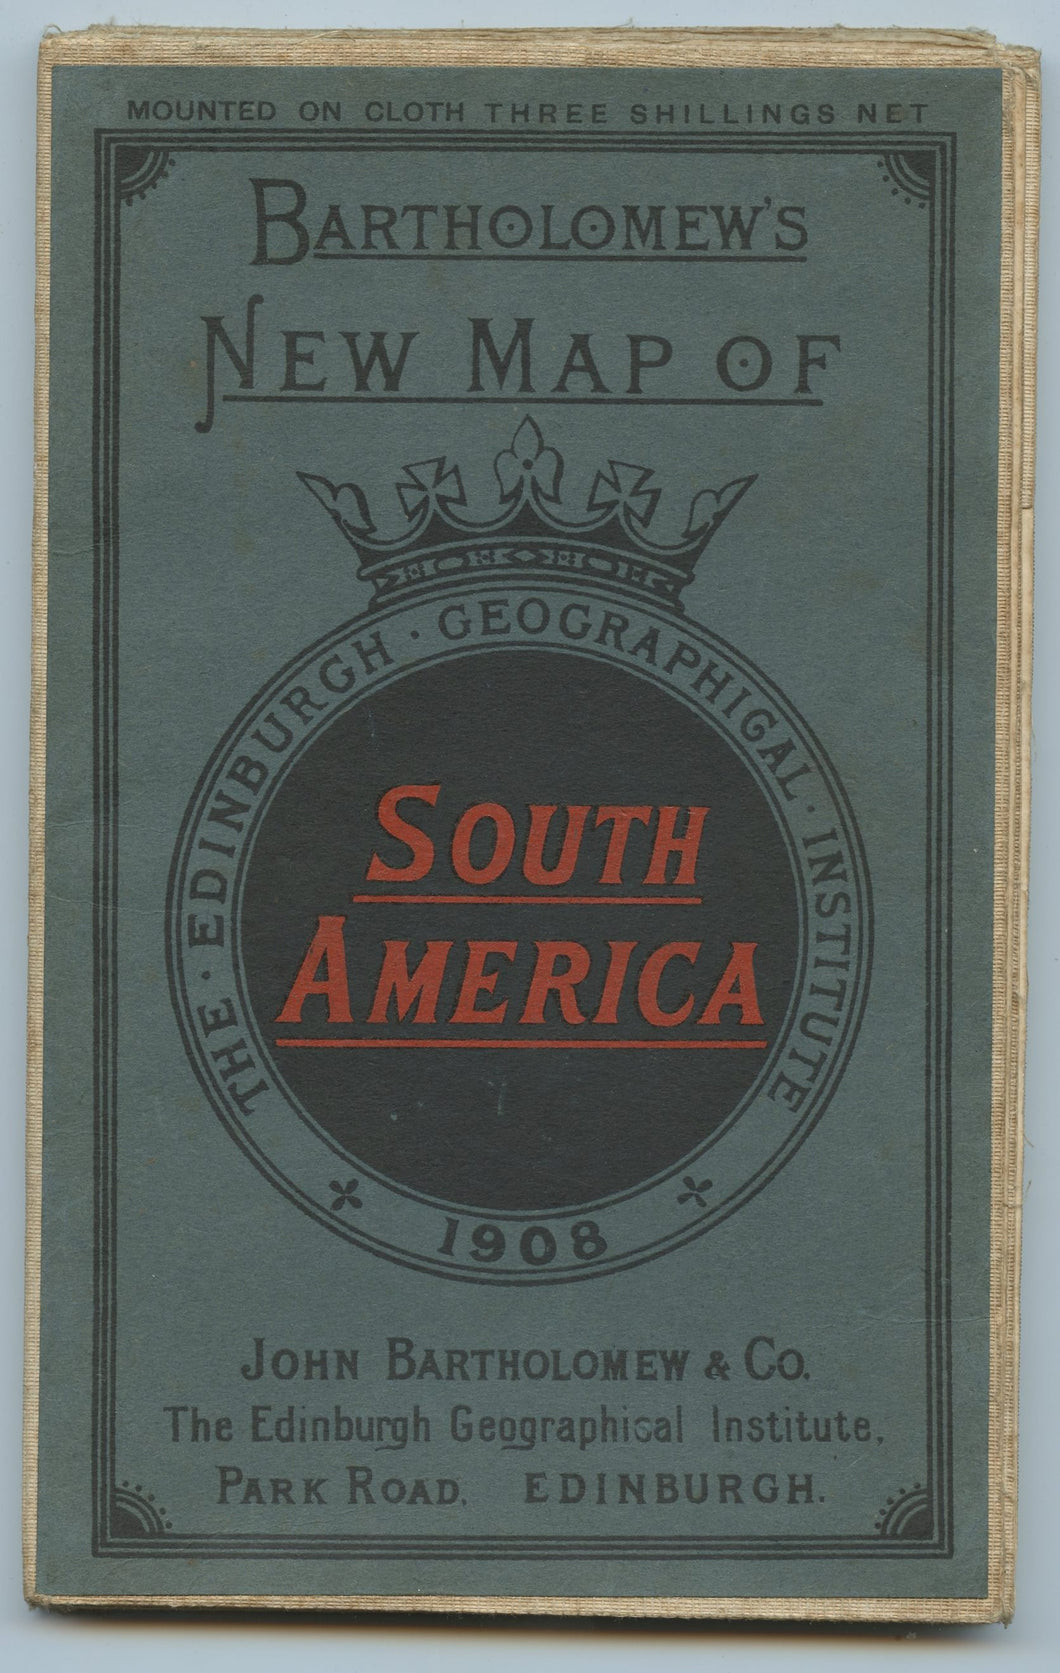 Bartholomew's New Map of South America